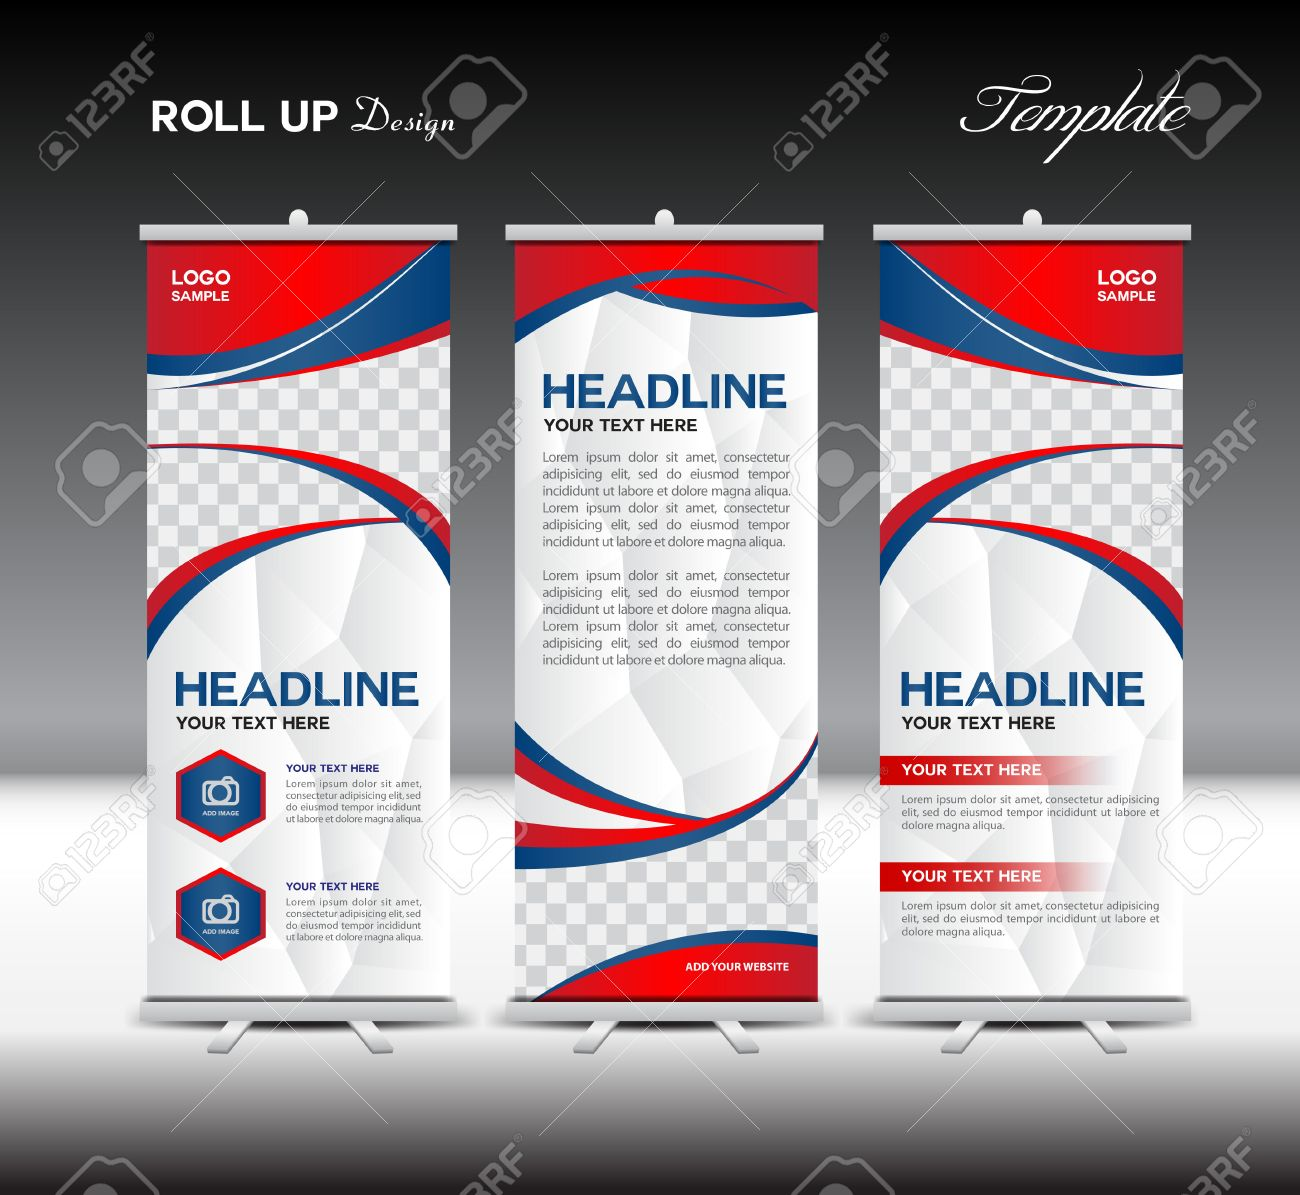 Red And Blue Roll Up Banner Template Illustration,banner Design ...